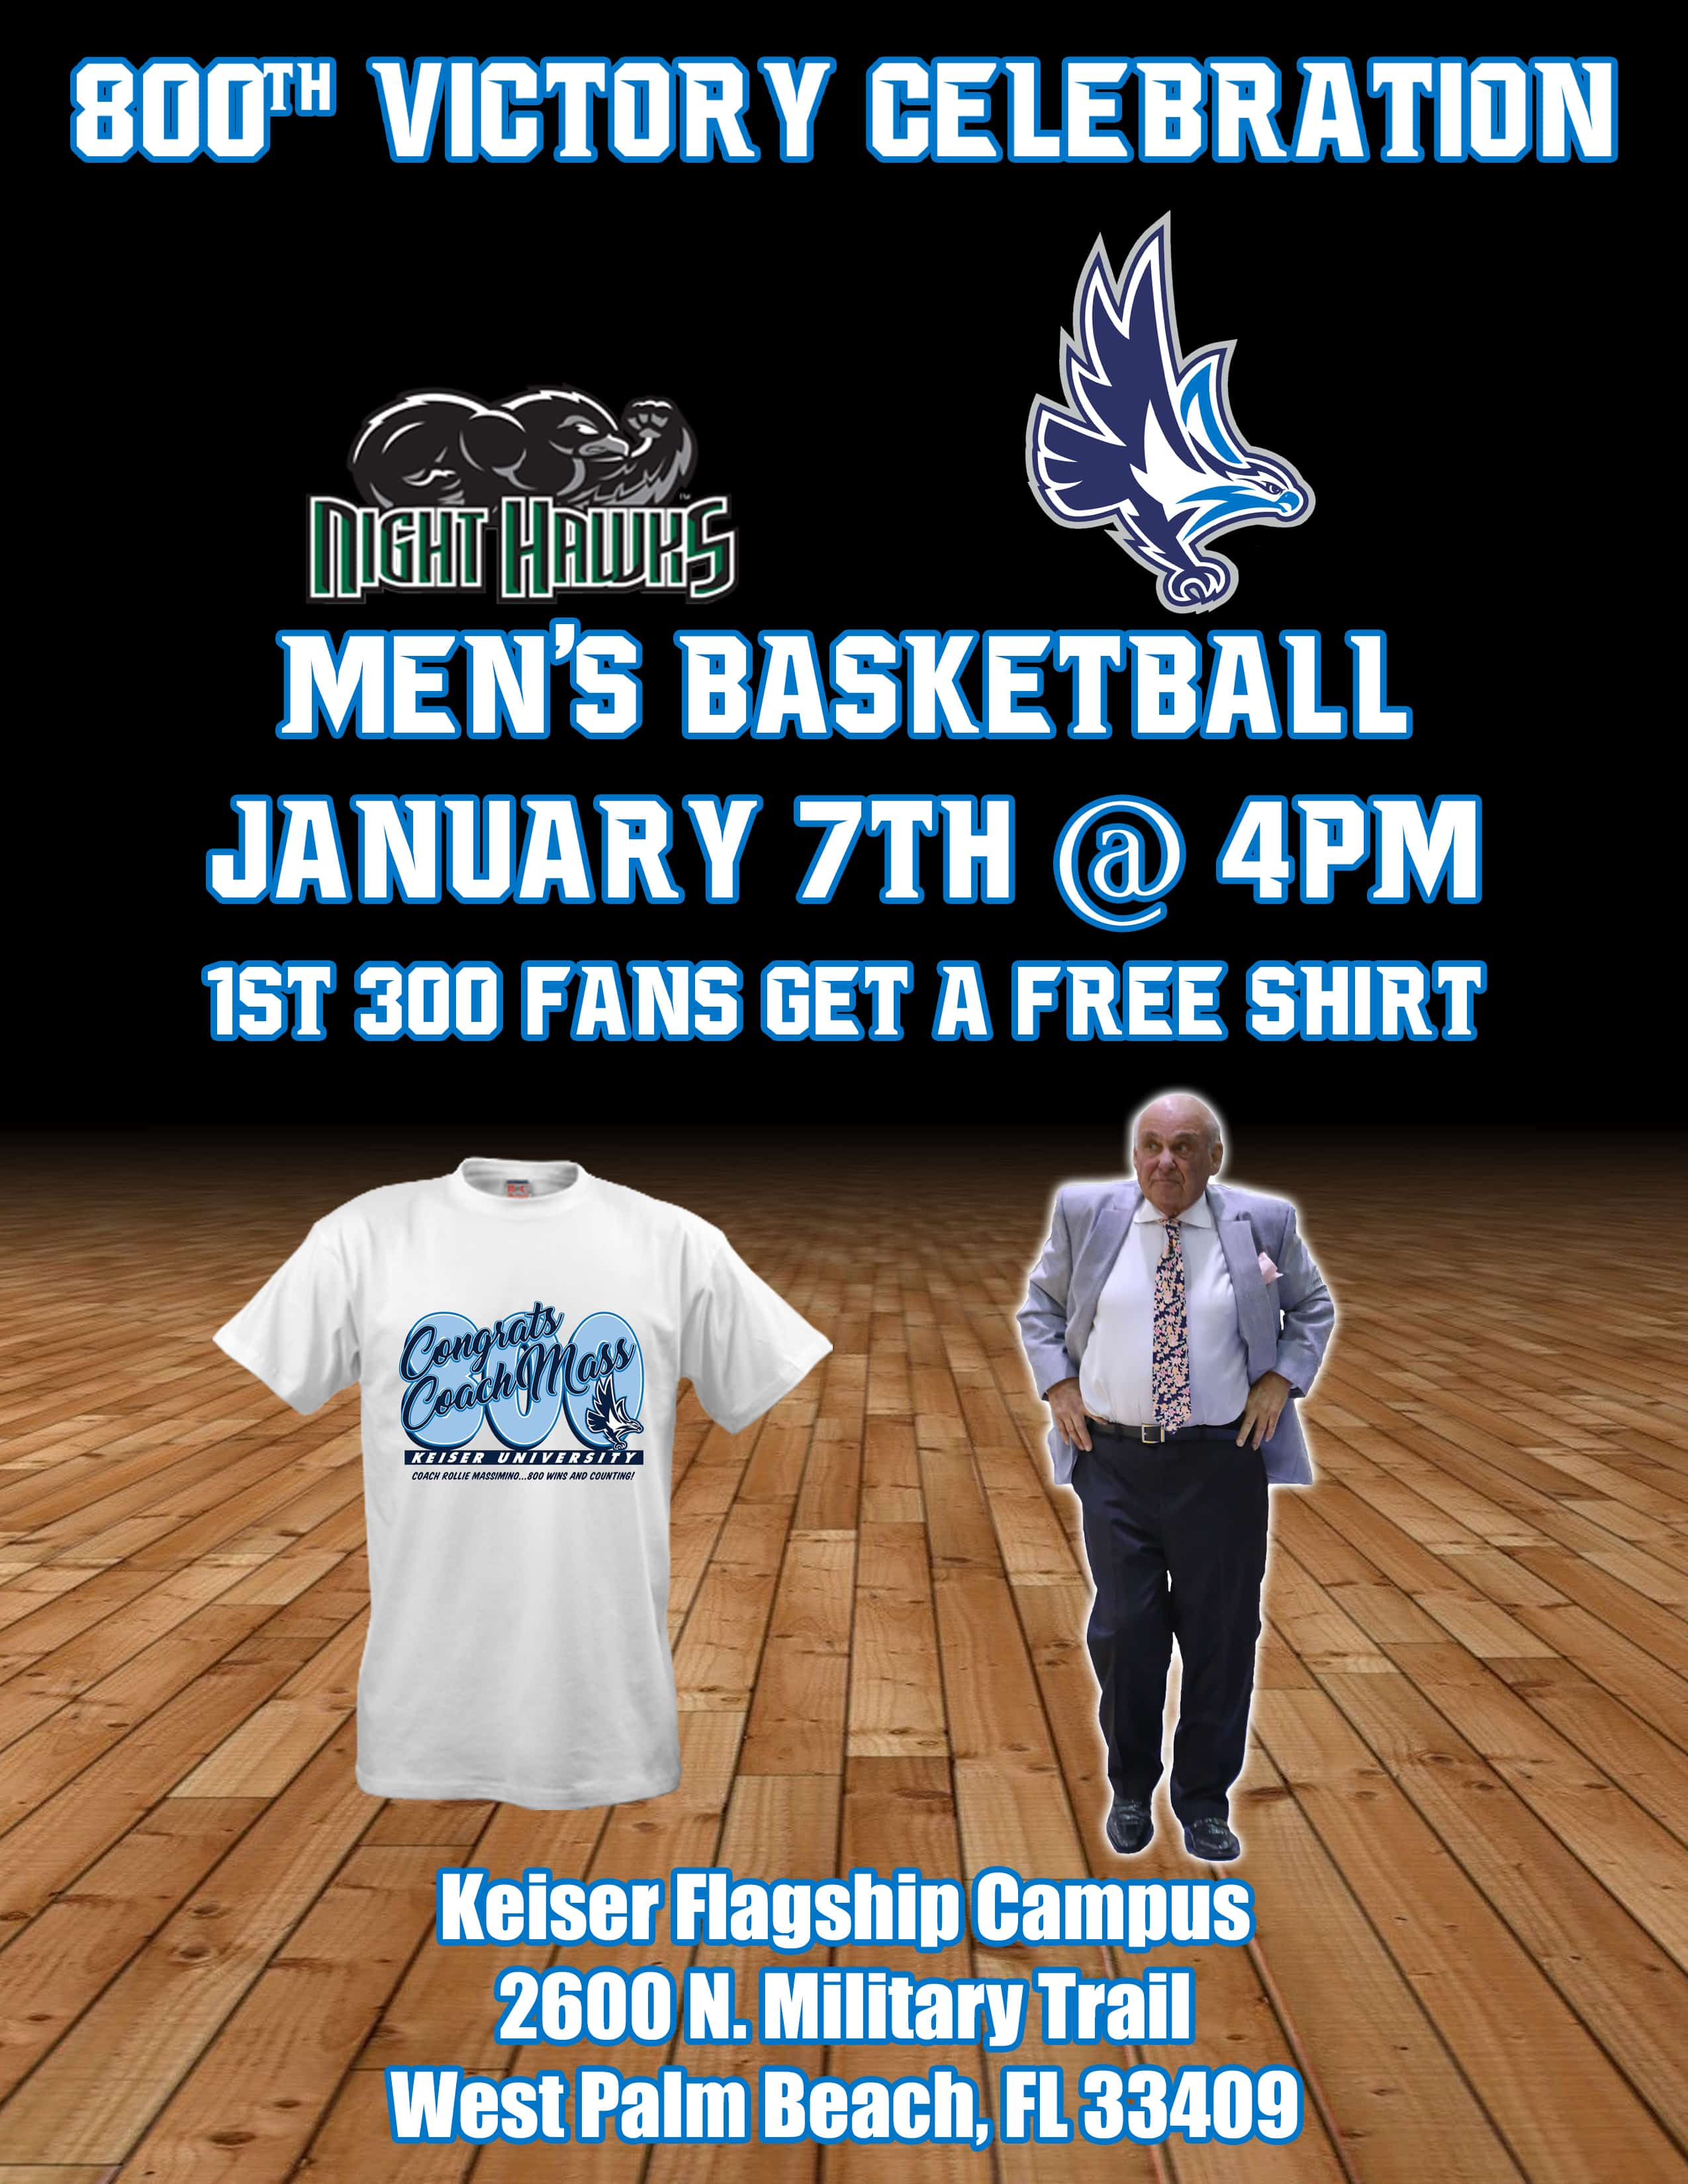 ATTENTION Keiser Community!! You are Invited to Attend the 800th Victory Celebration in Honor of Rollie Massiminio!